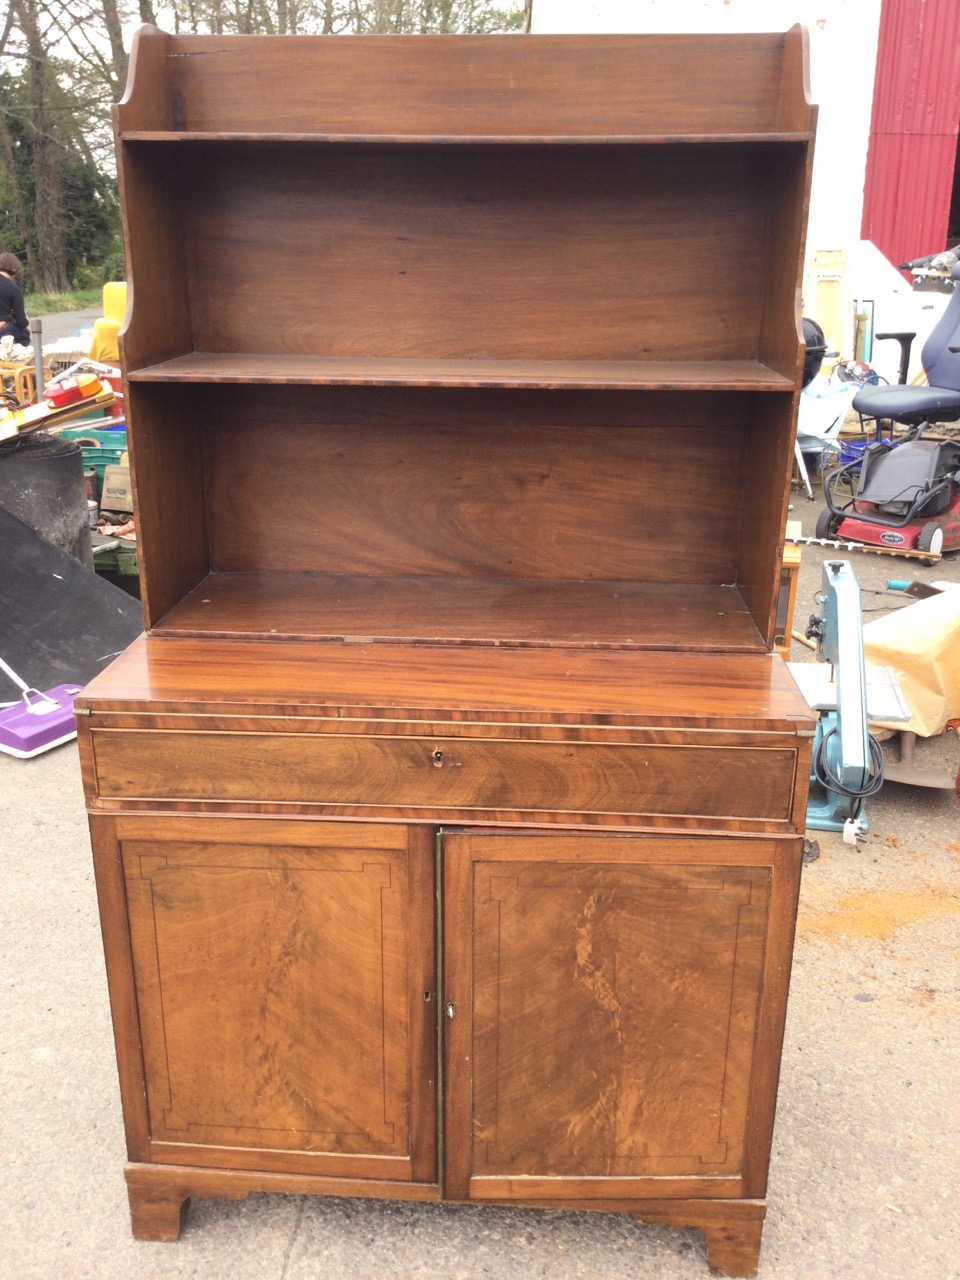 A mahogany secretaire bookcase with open shelves above a turn-over crossbanded desk with baize